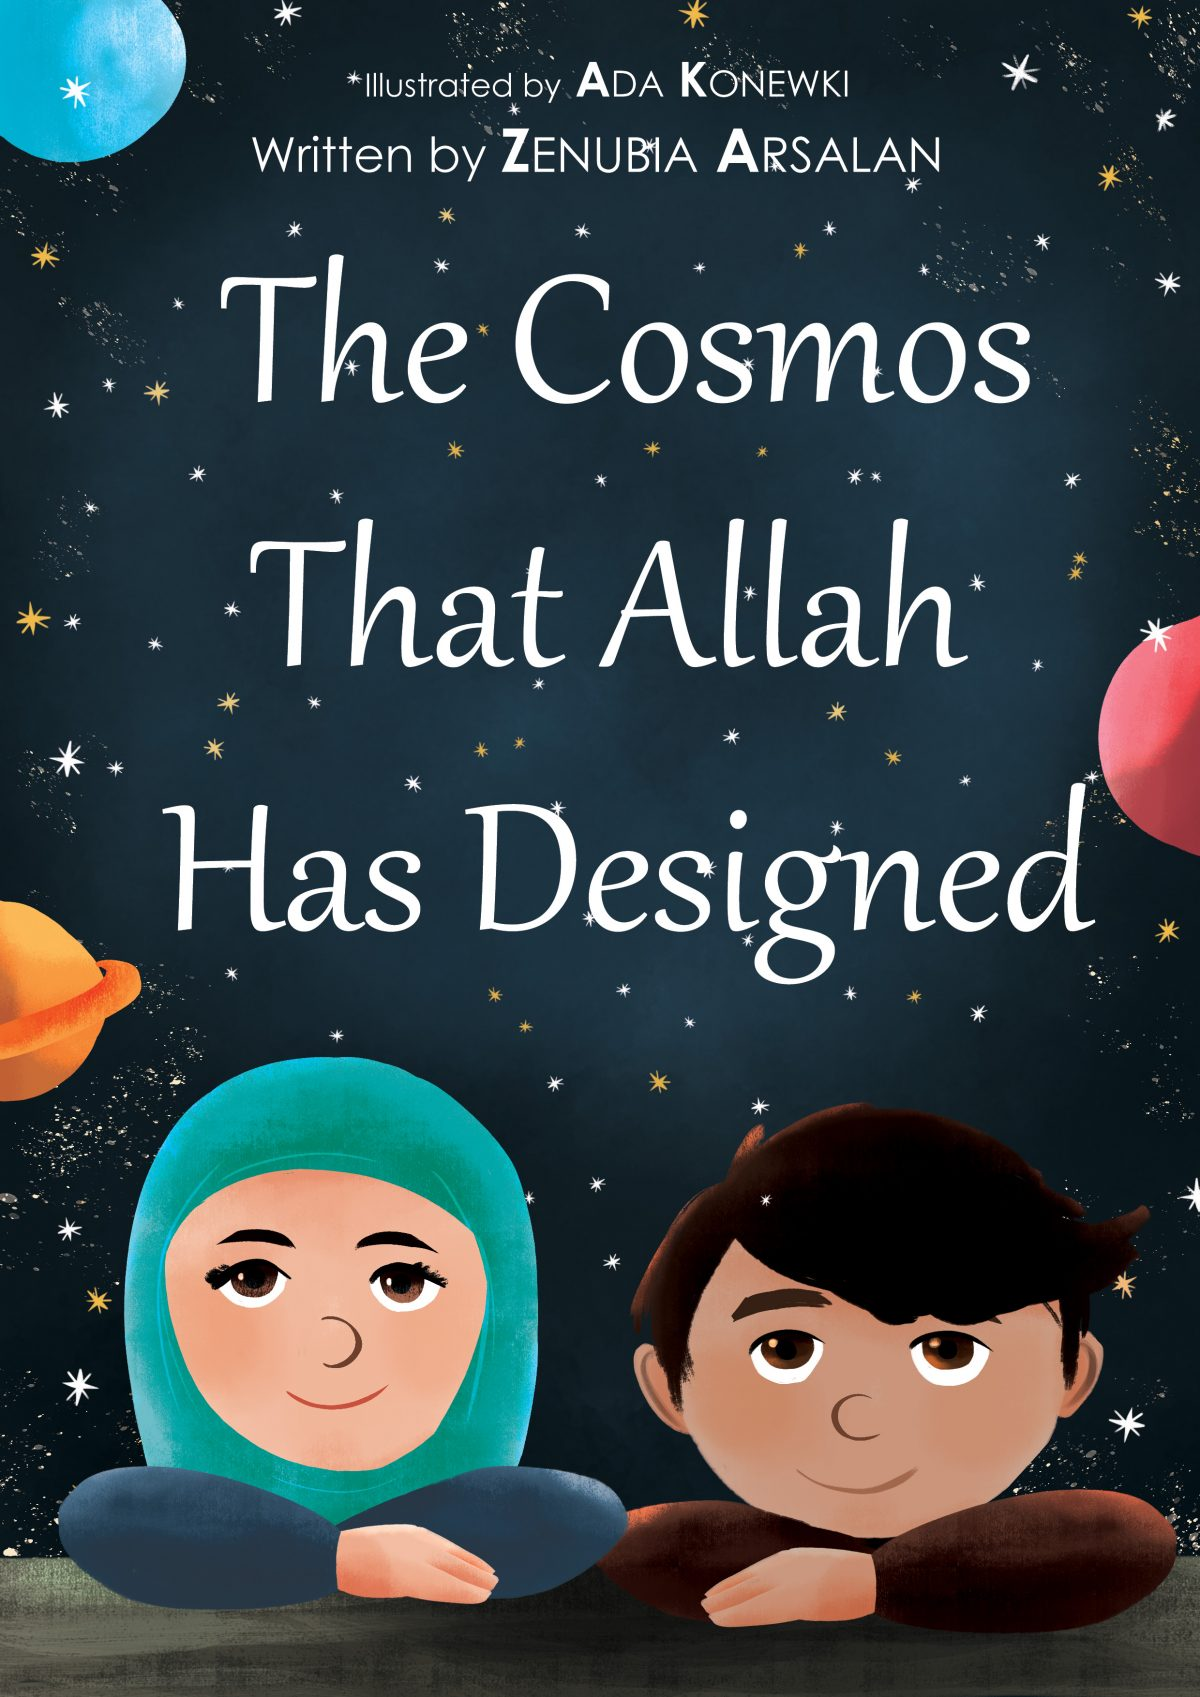 The Cosmos that Allah has Designed